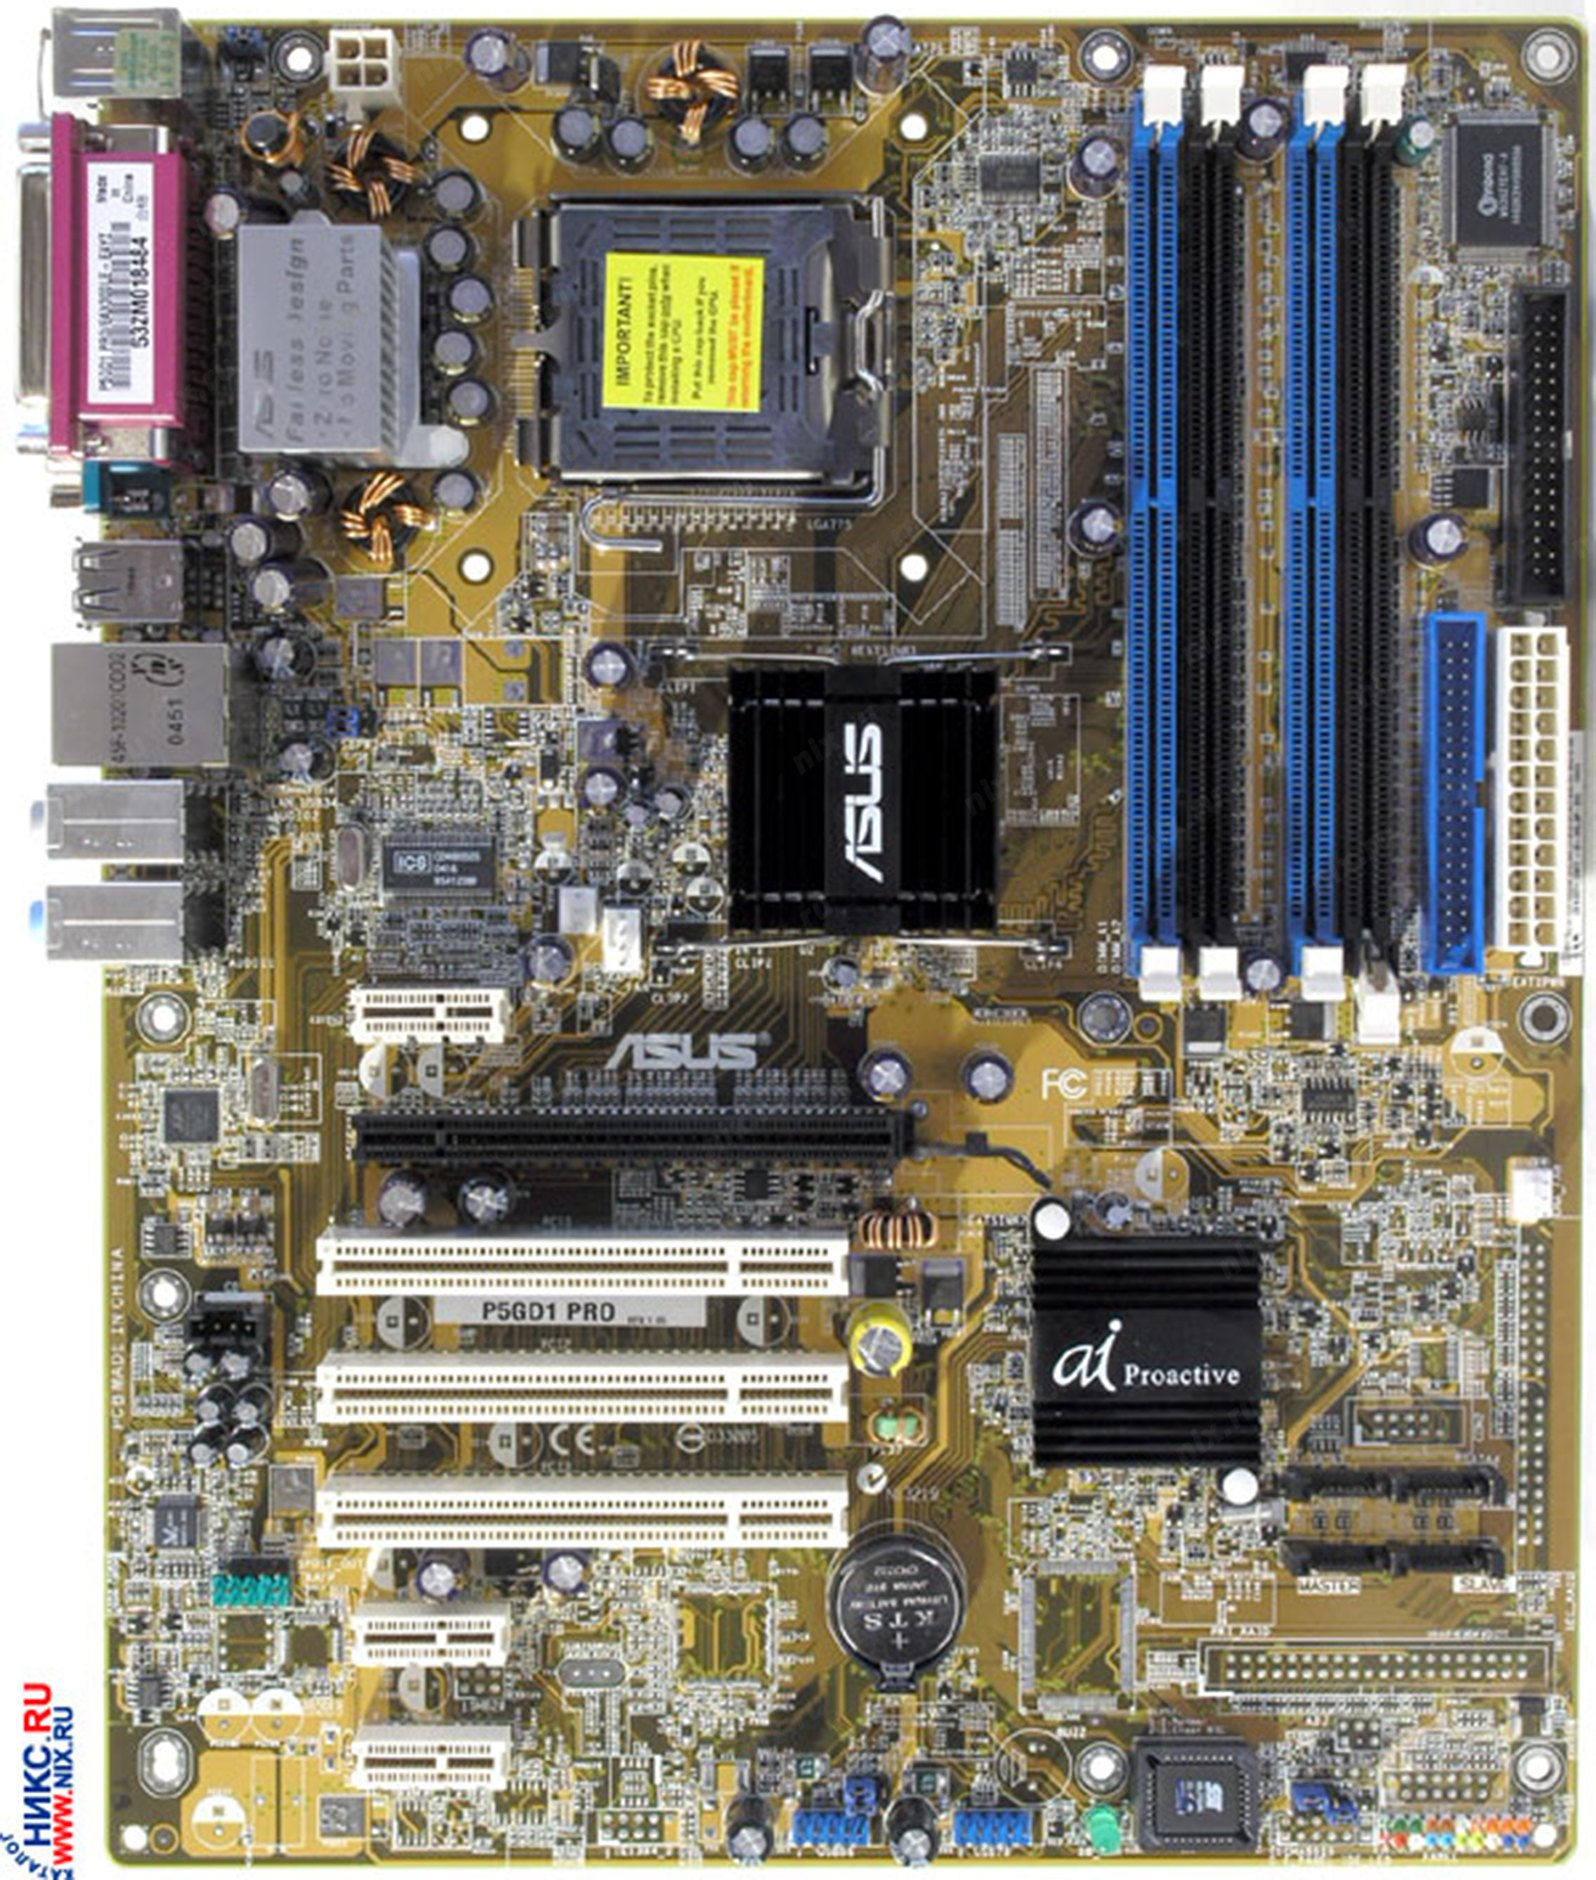 Motherboard ASUS P5GD1 PRO: review, features and reviews 80